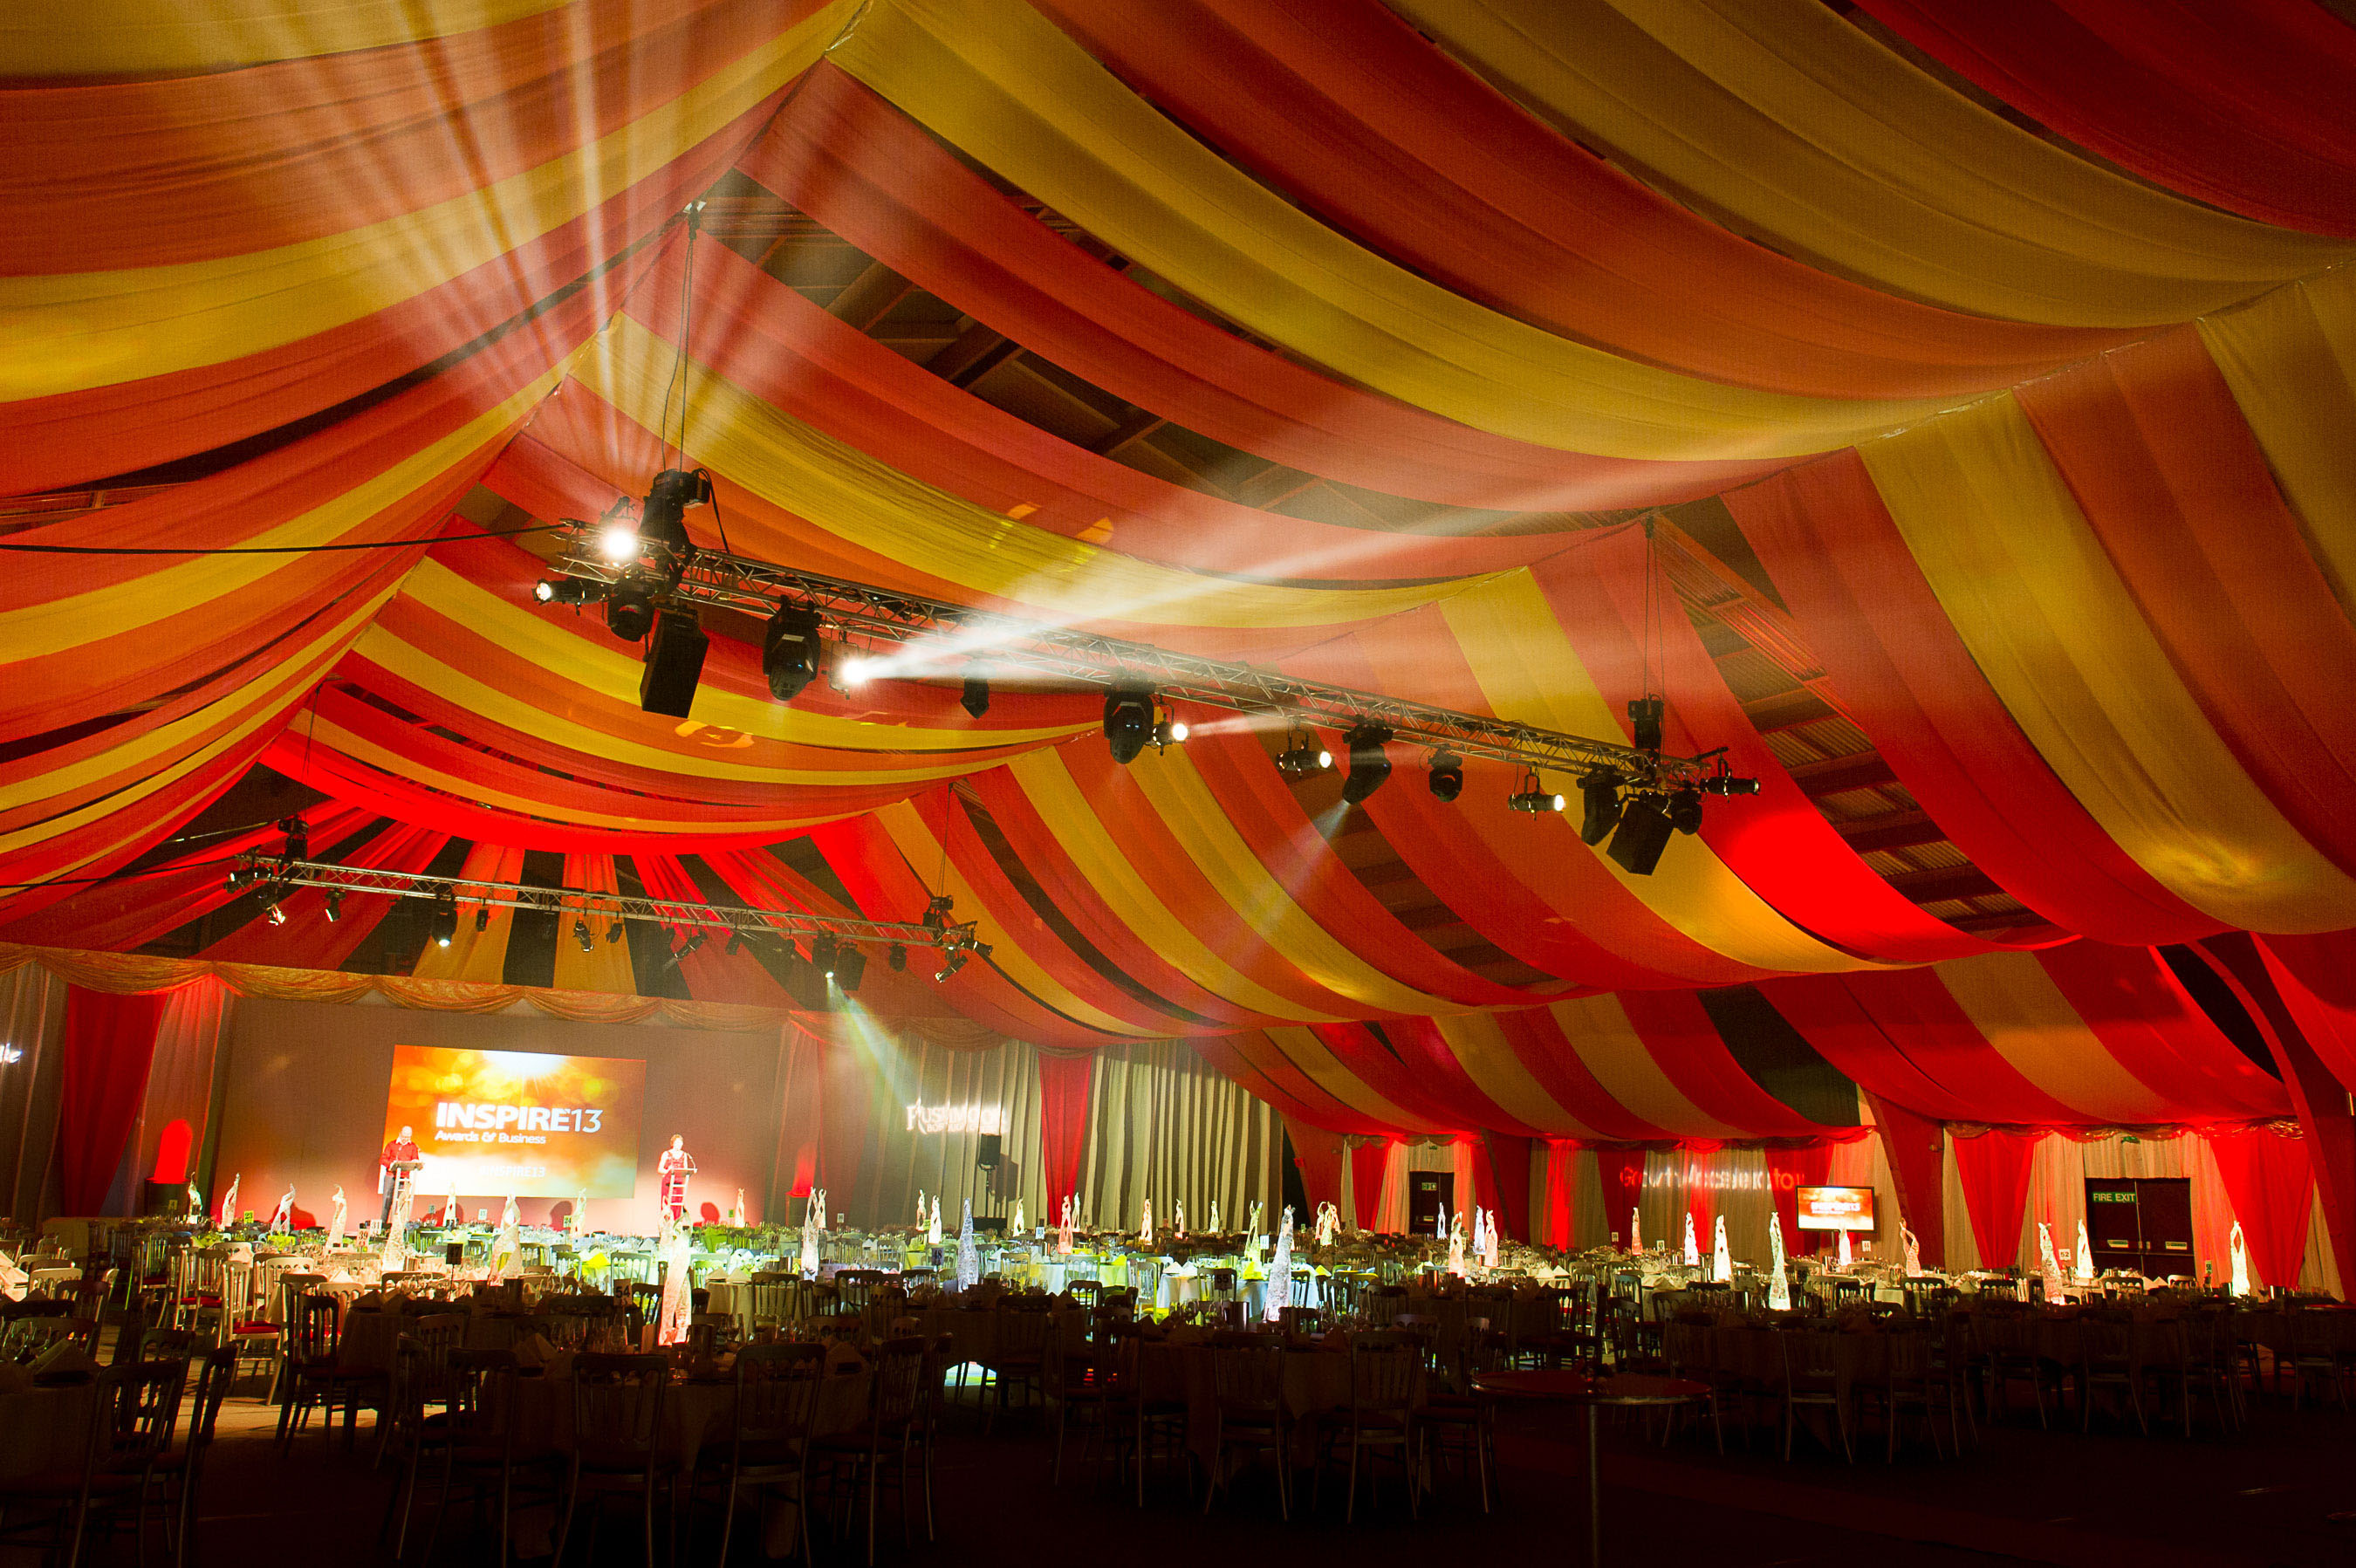 International Party Decorations Corporate Events Decor Corporate Party Decorations Transform Venue